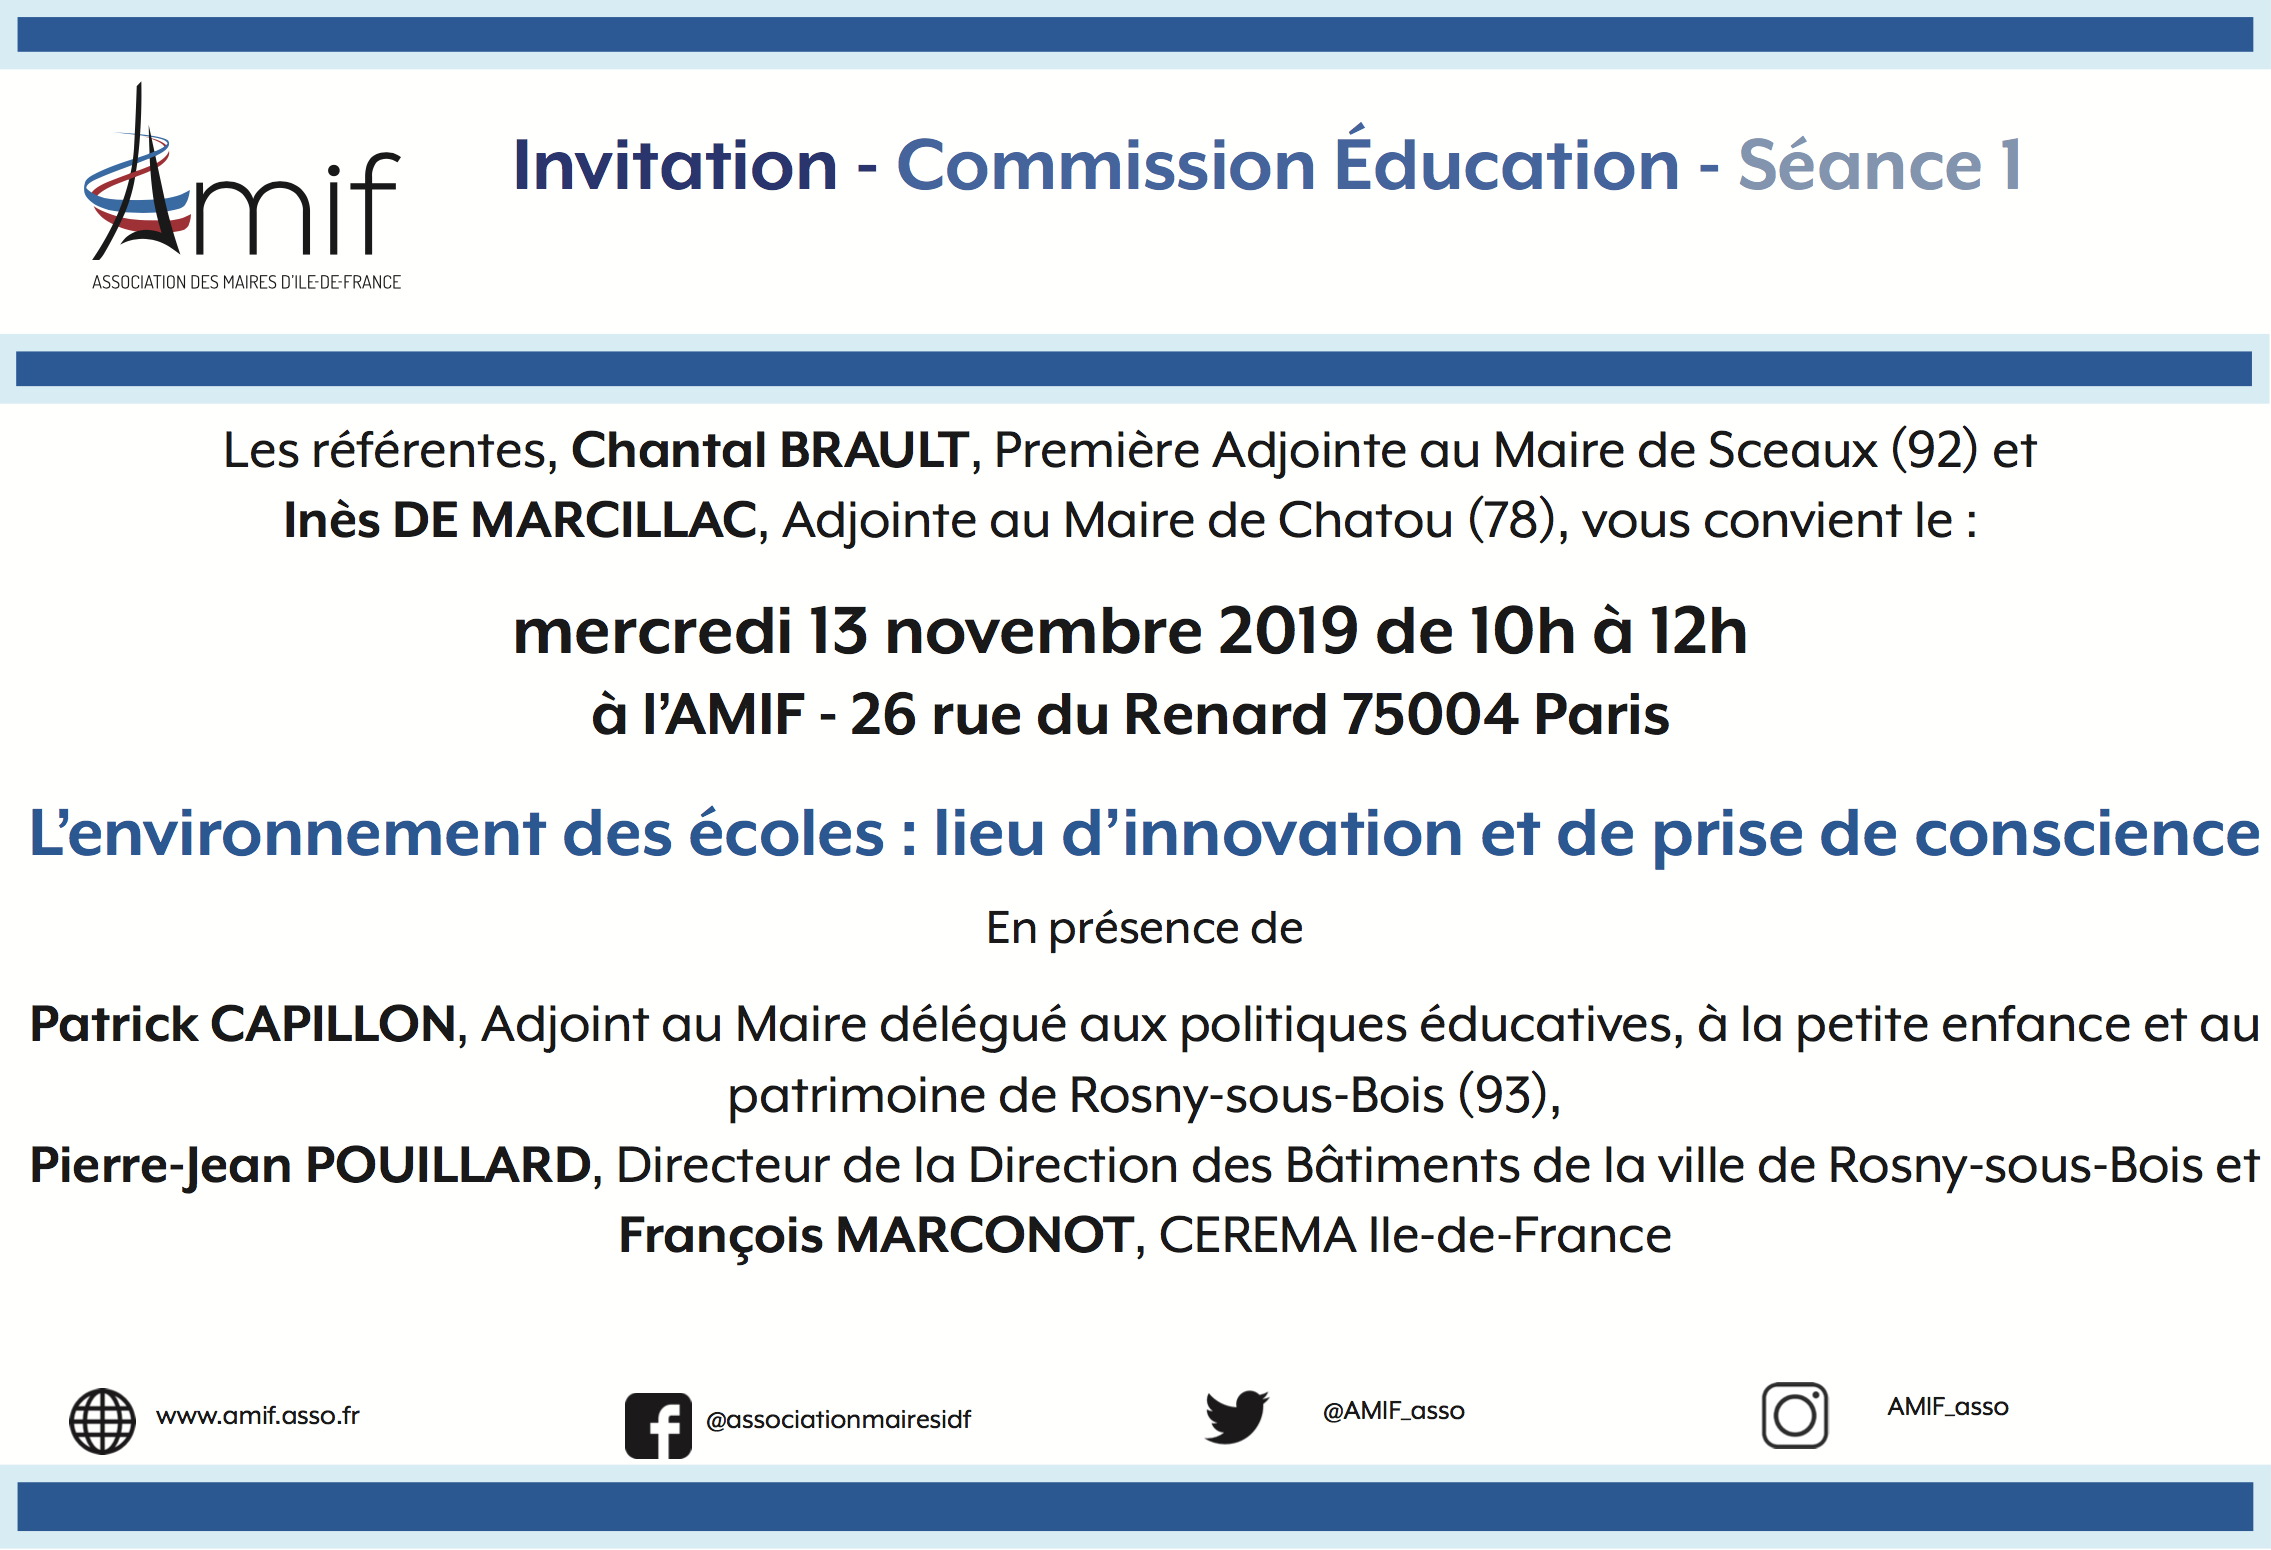 CommissionEducationSeance113novembre2019v1